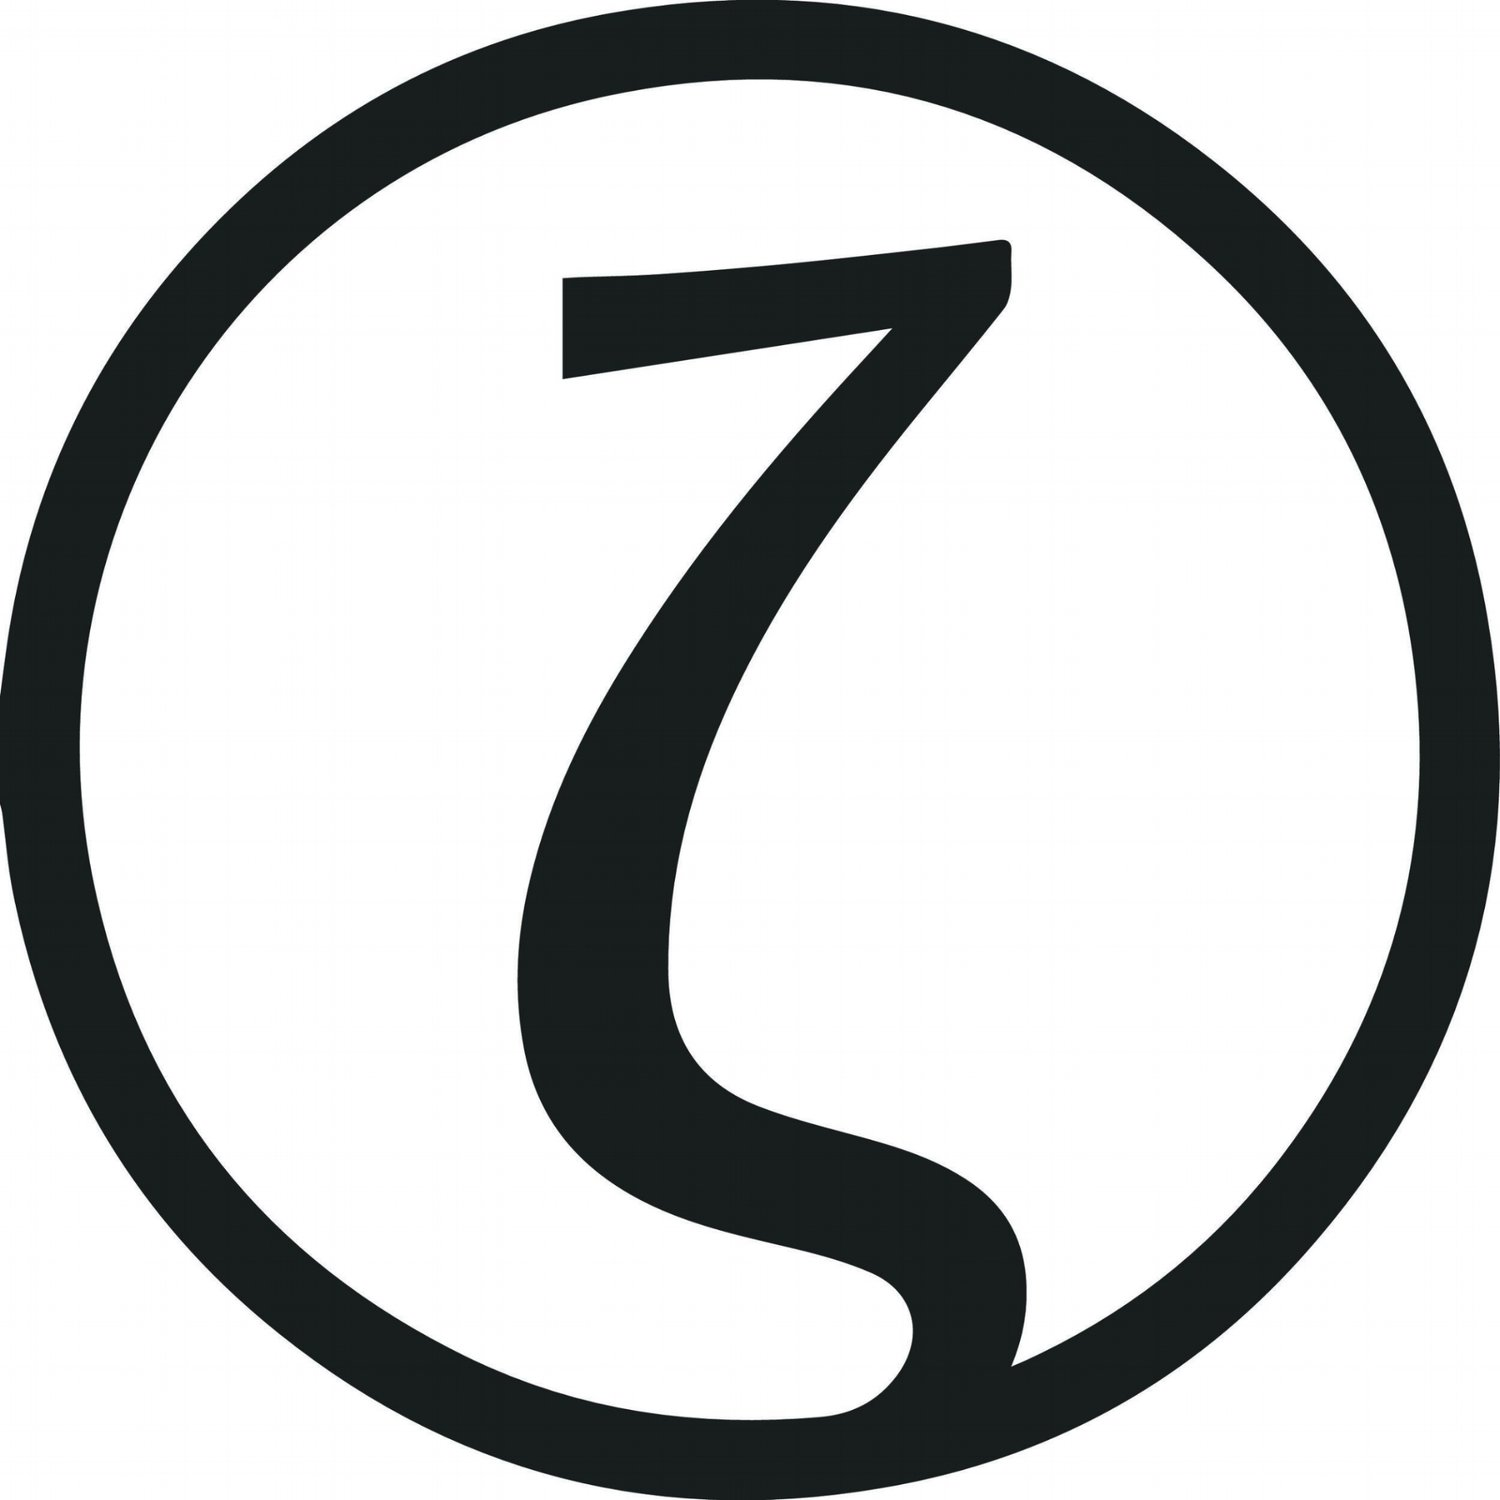 ZETEO COMMUNITY